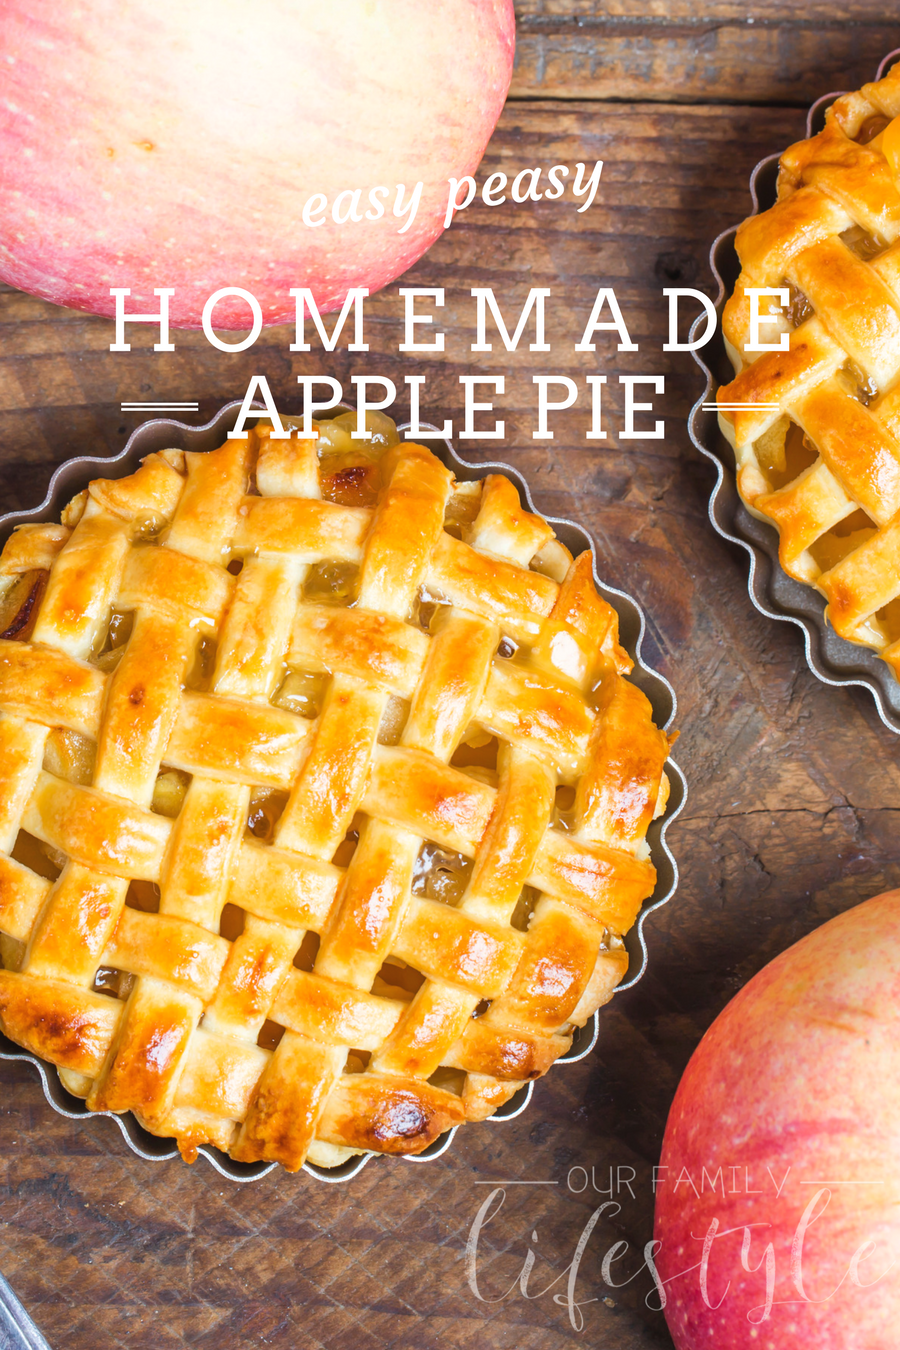 easy peasy homemade apple pie